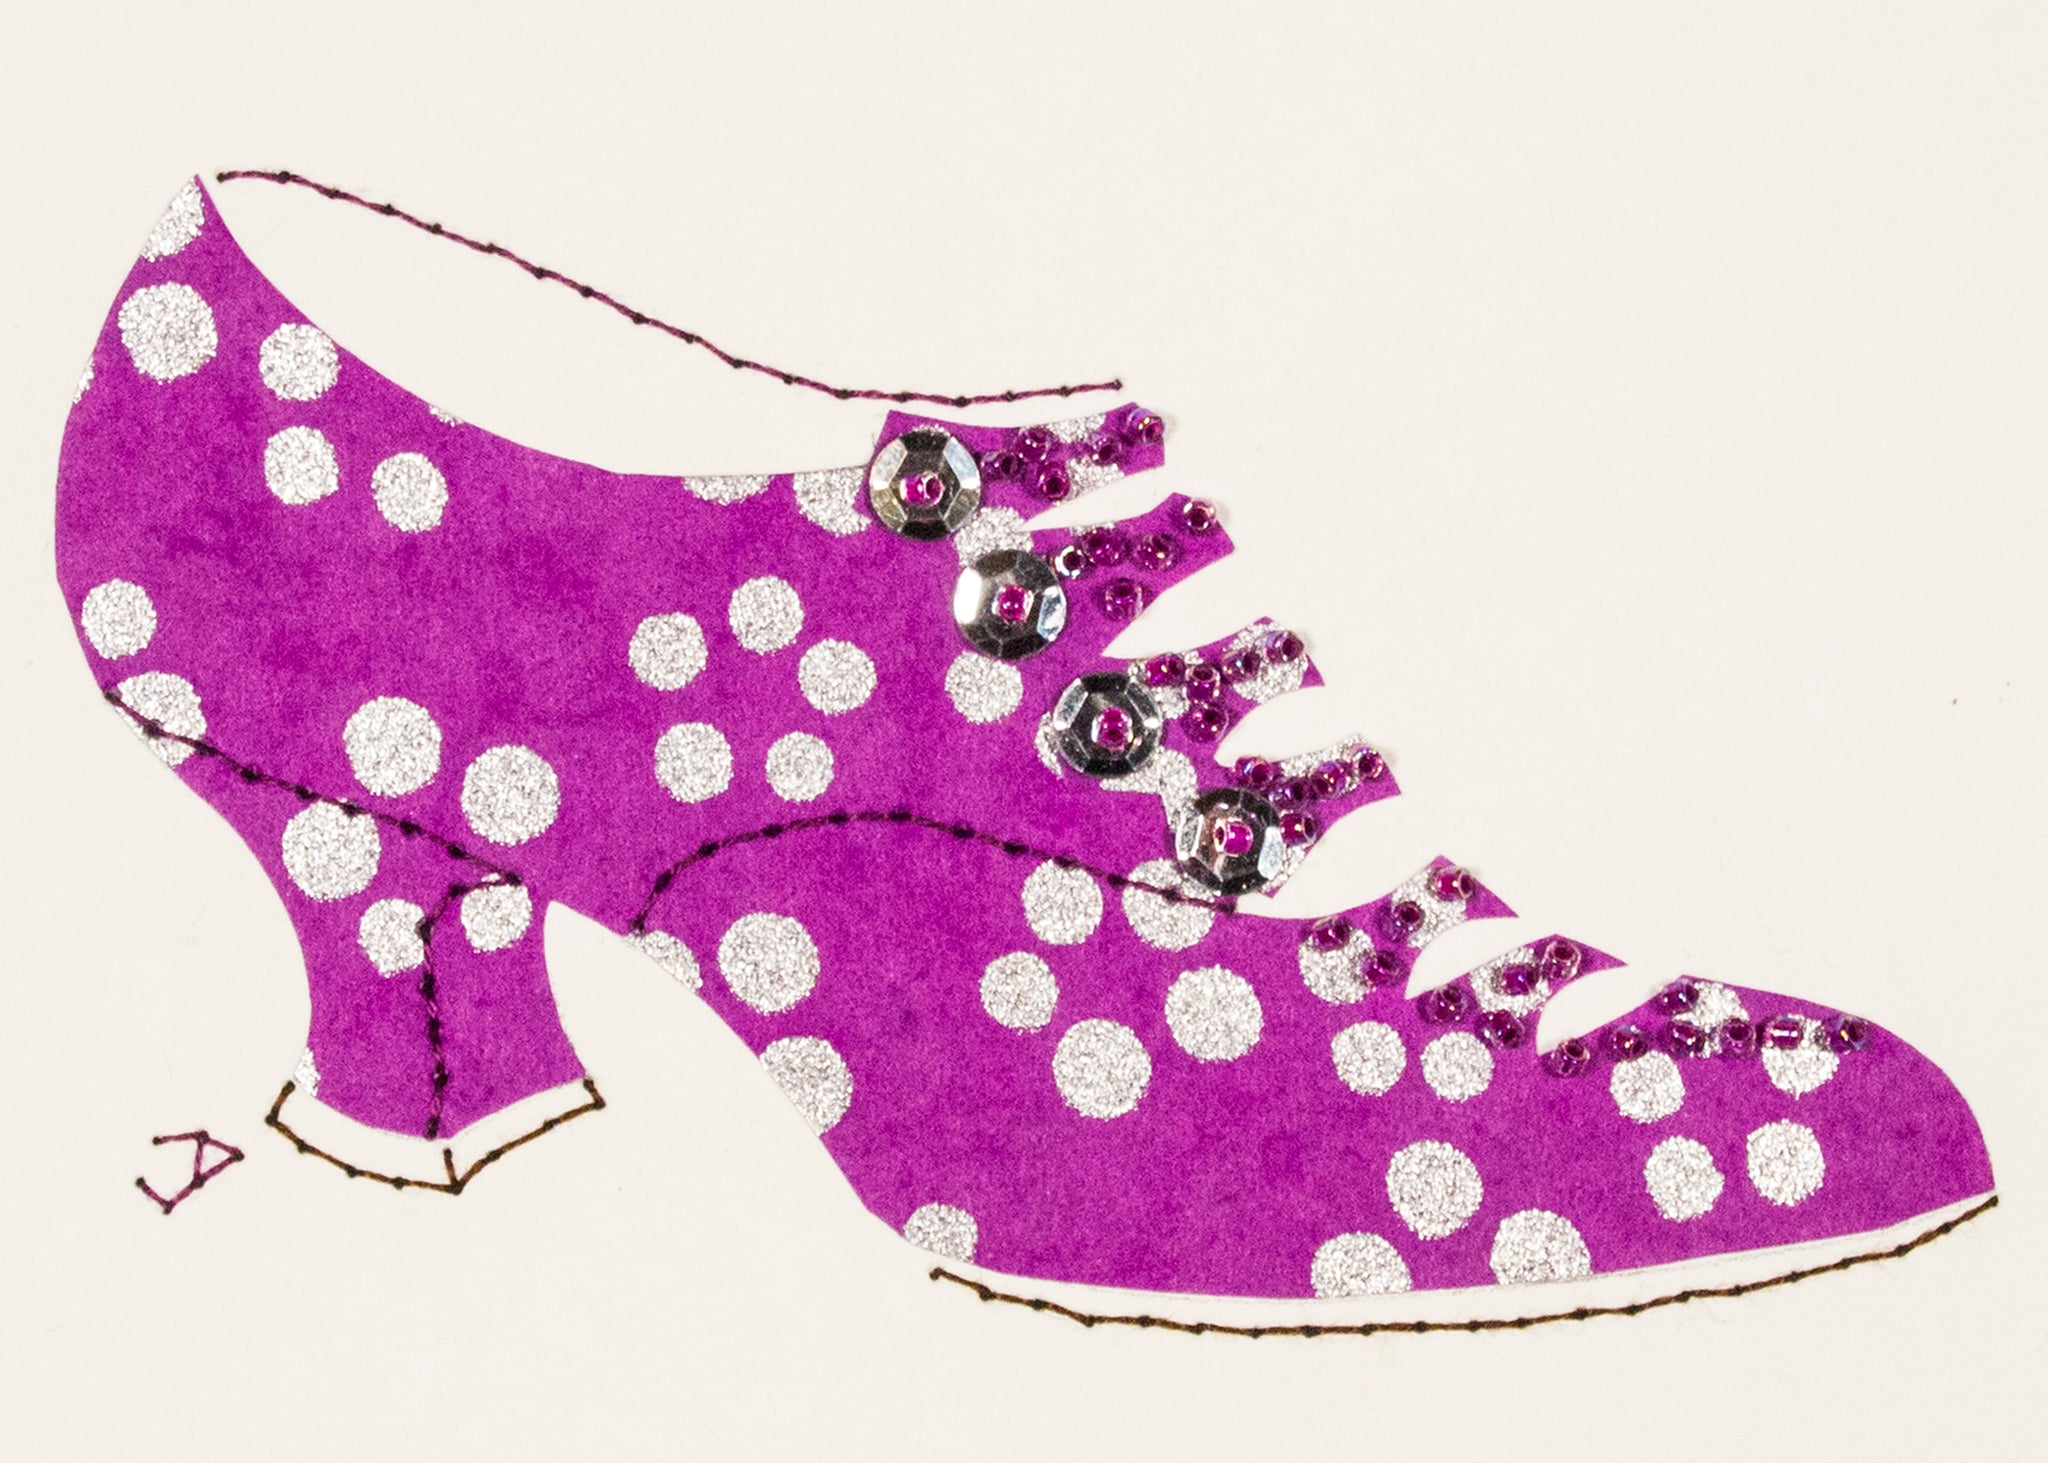 1916 Shoe in Purple with Silver Dots